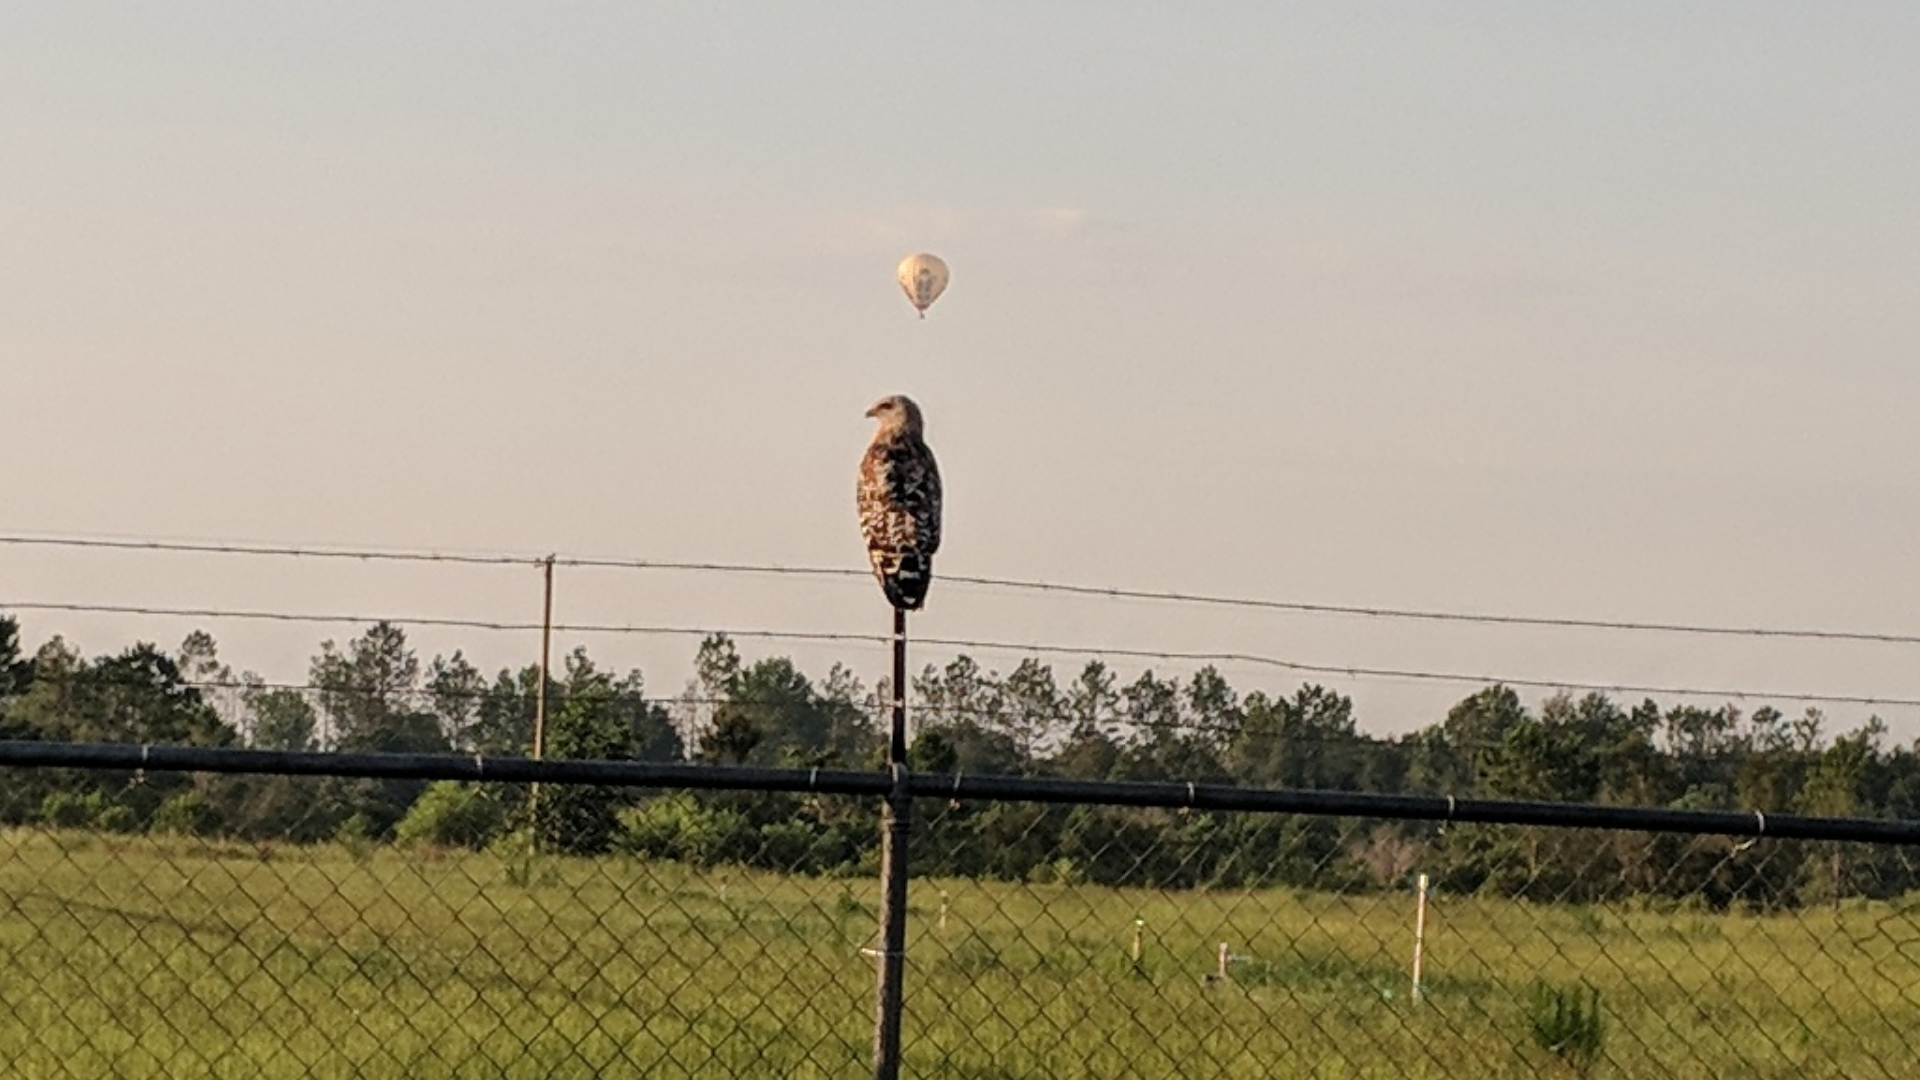 Either there's a hot air balloon in the distance, or this hawk just had a great idea